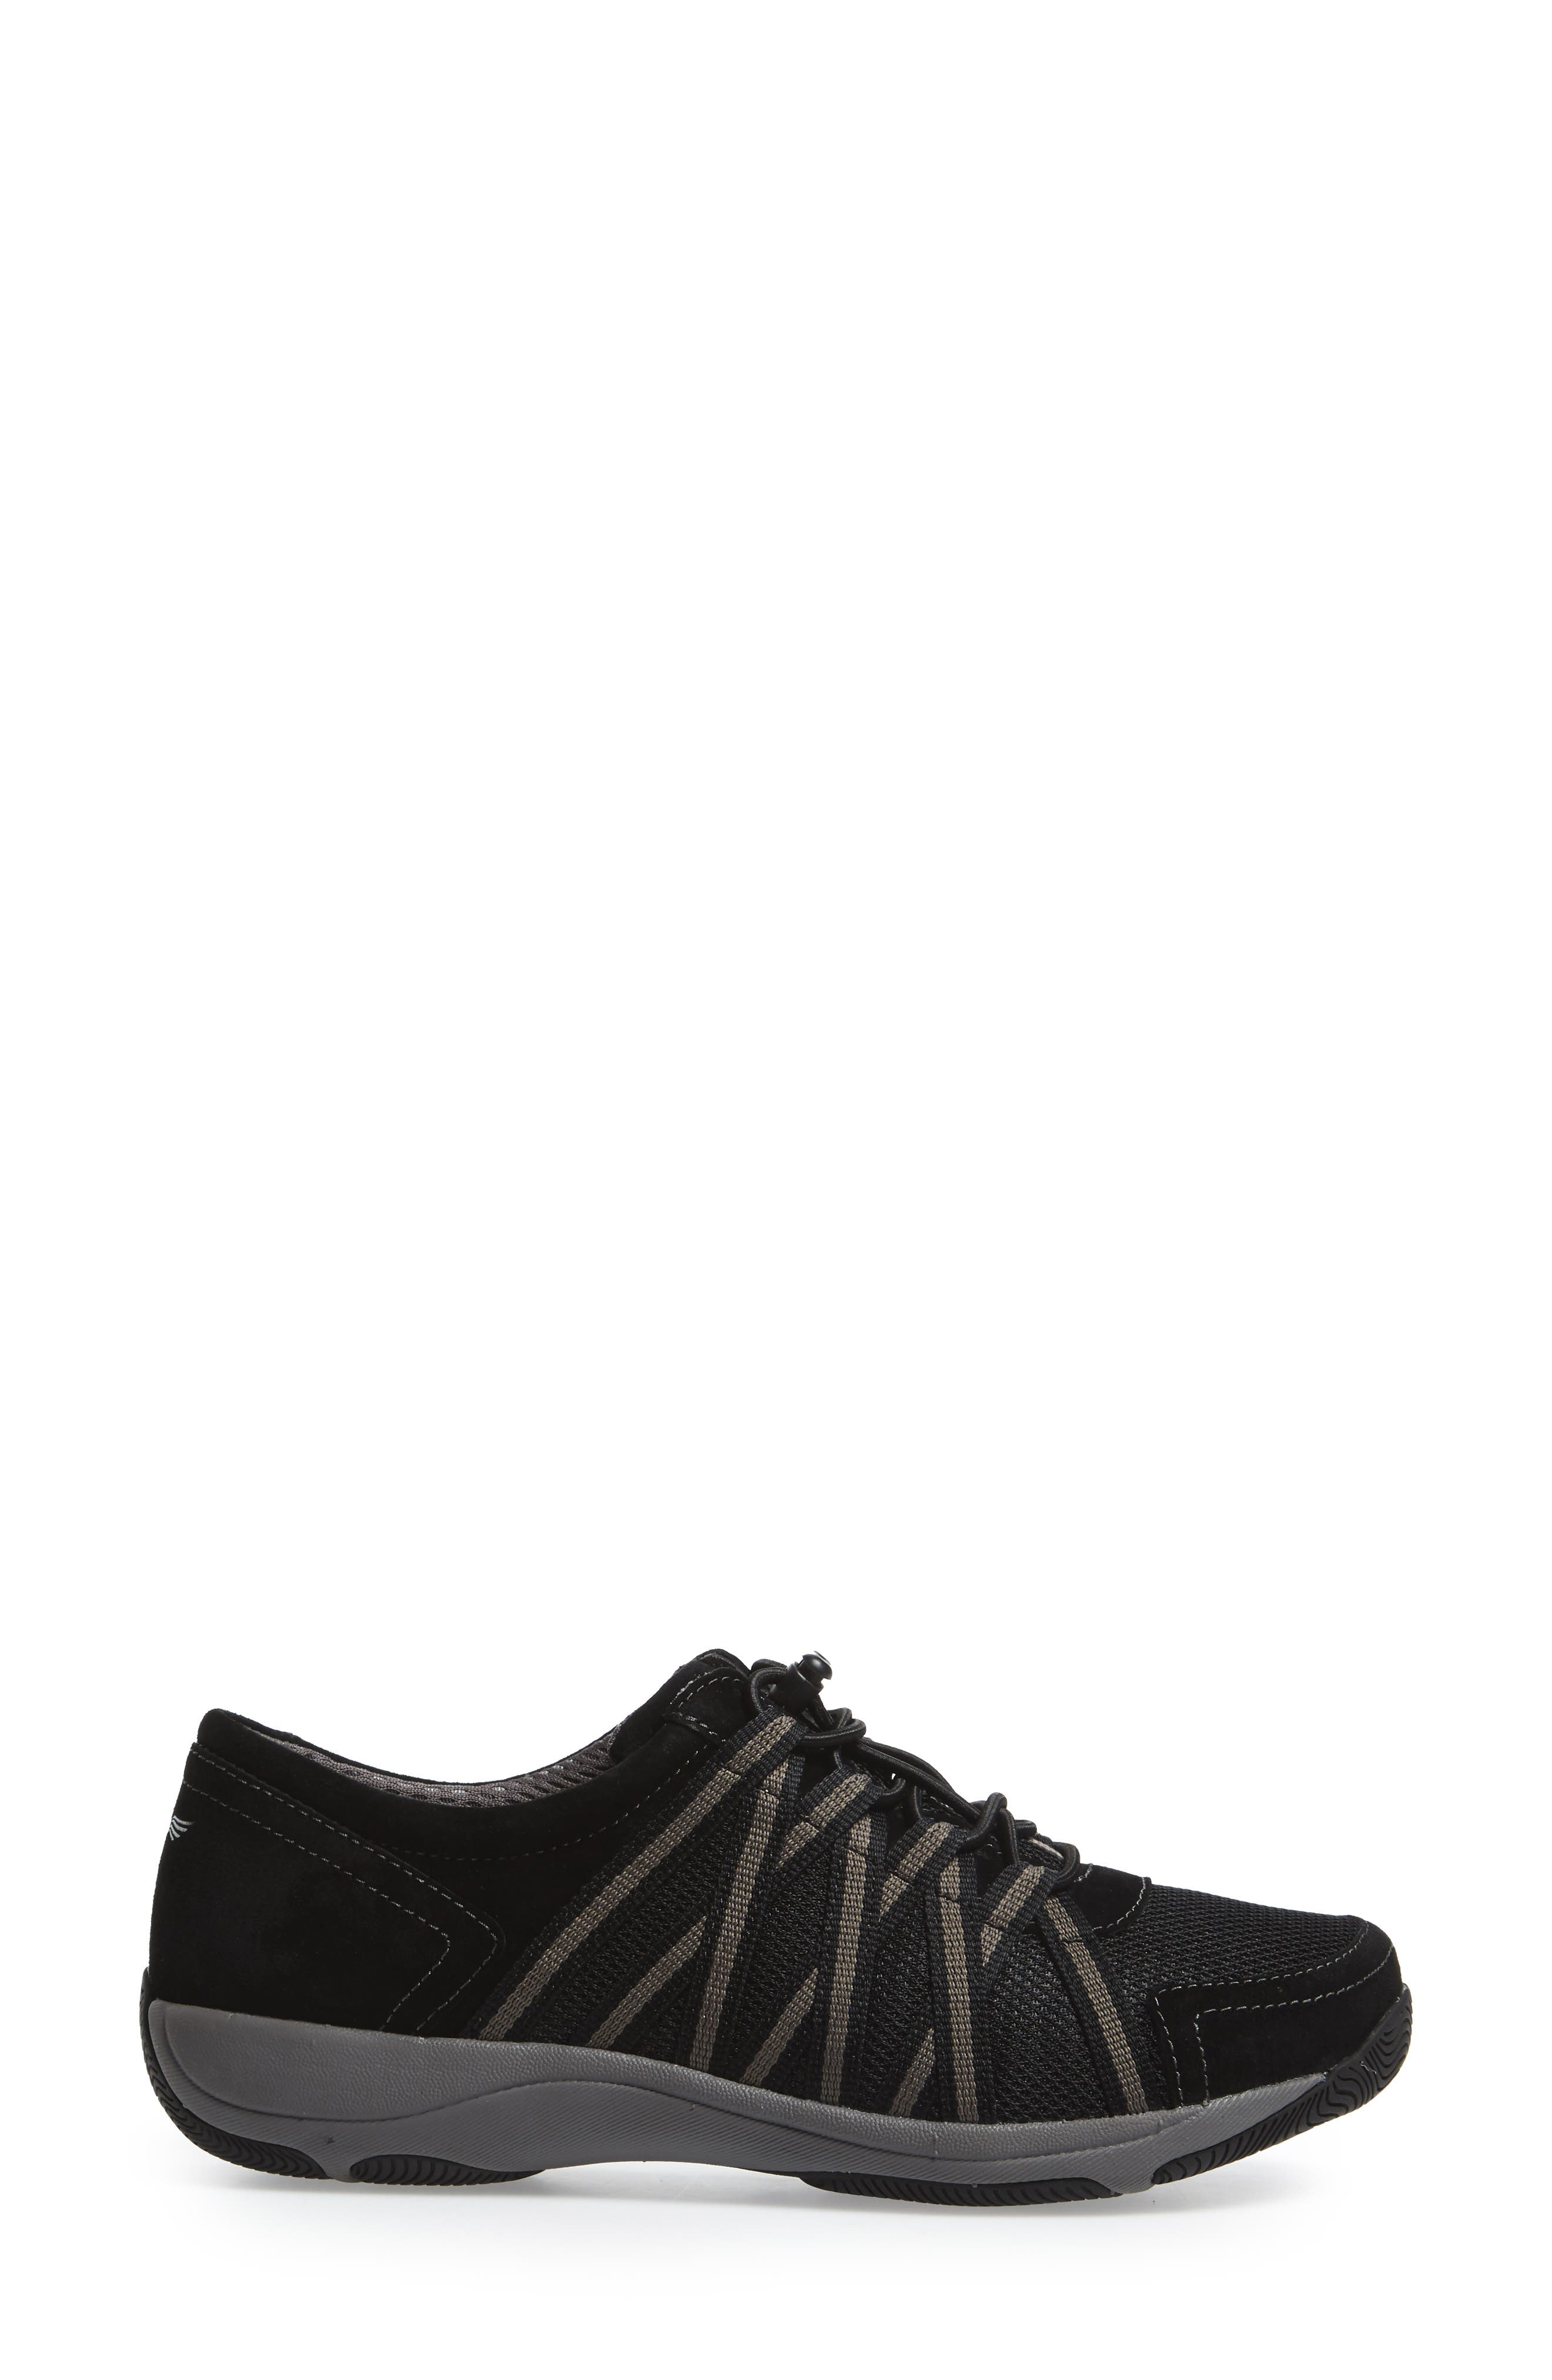 Halifax Collection Honor Sneaker,                             Alternate thumbnail 3, color,                             BLACK/ BLACK SUEDE